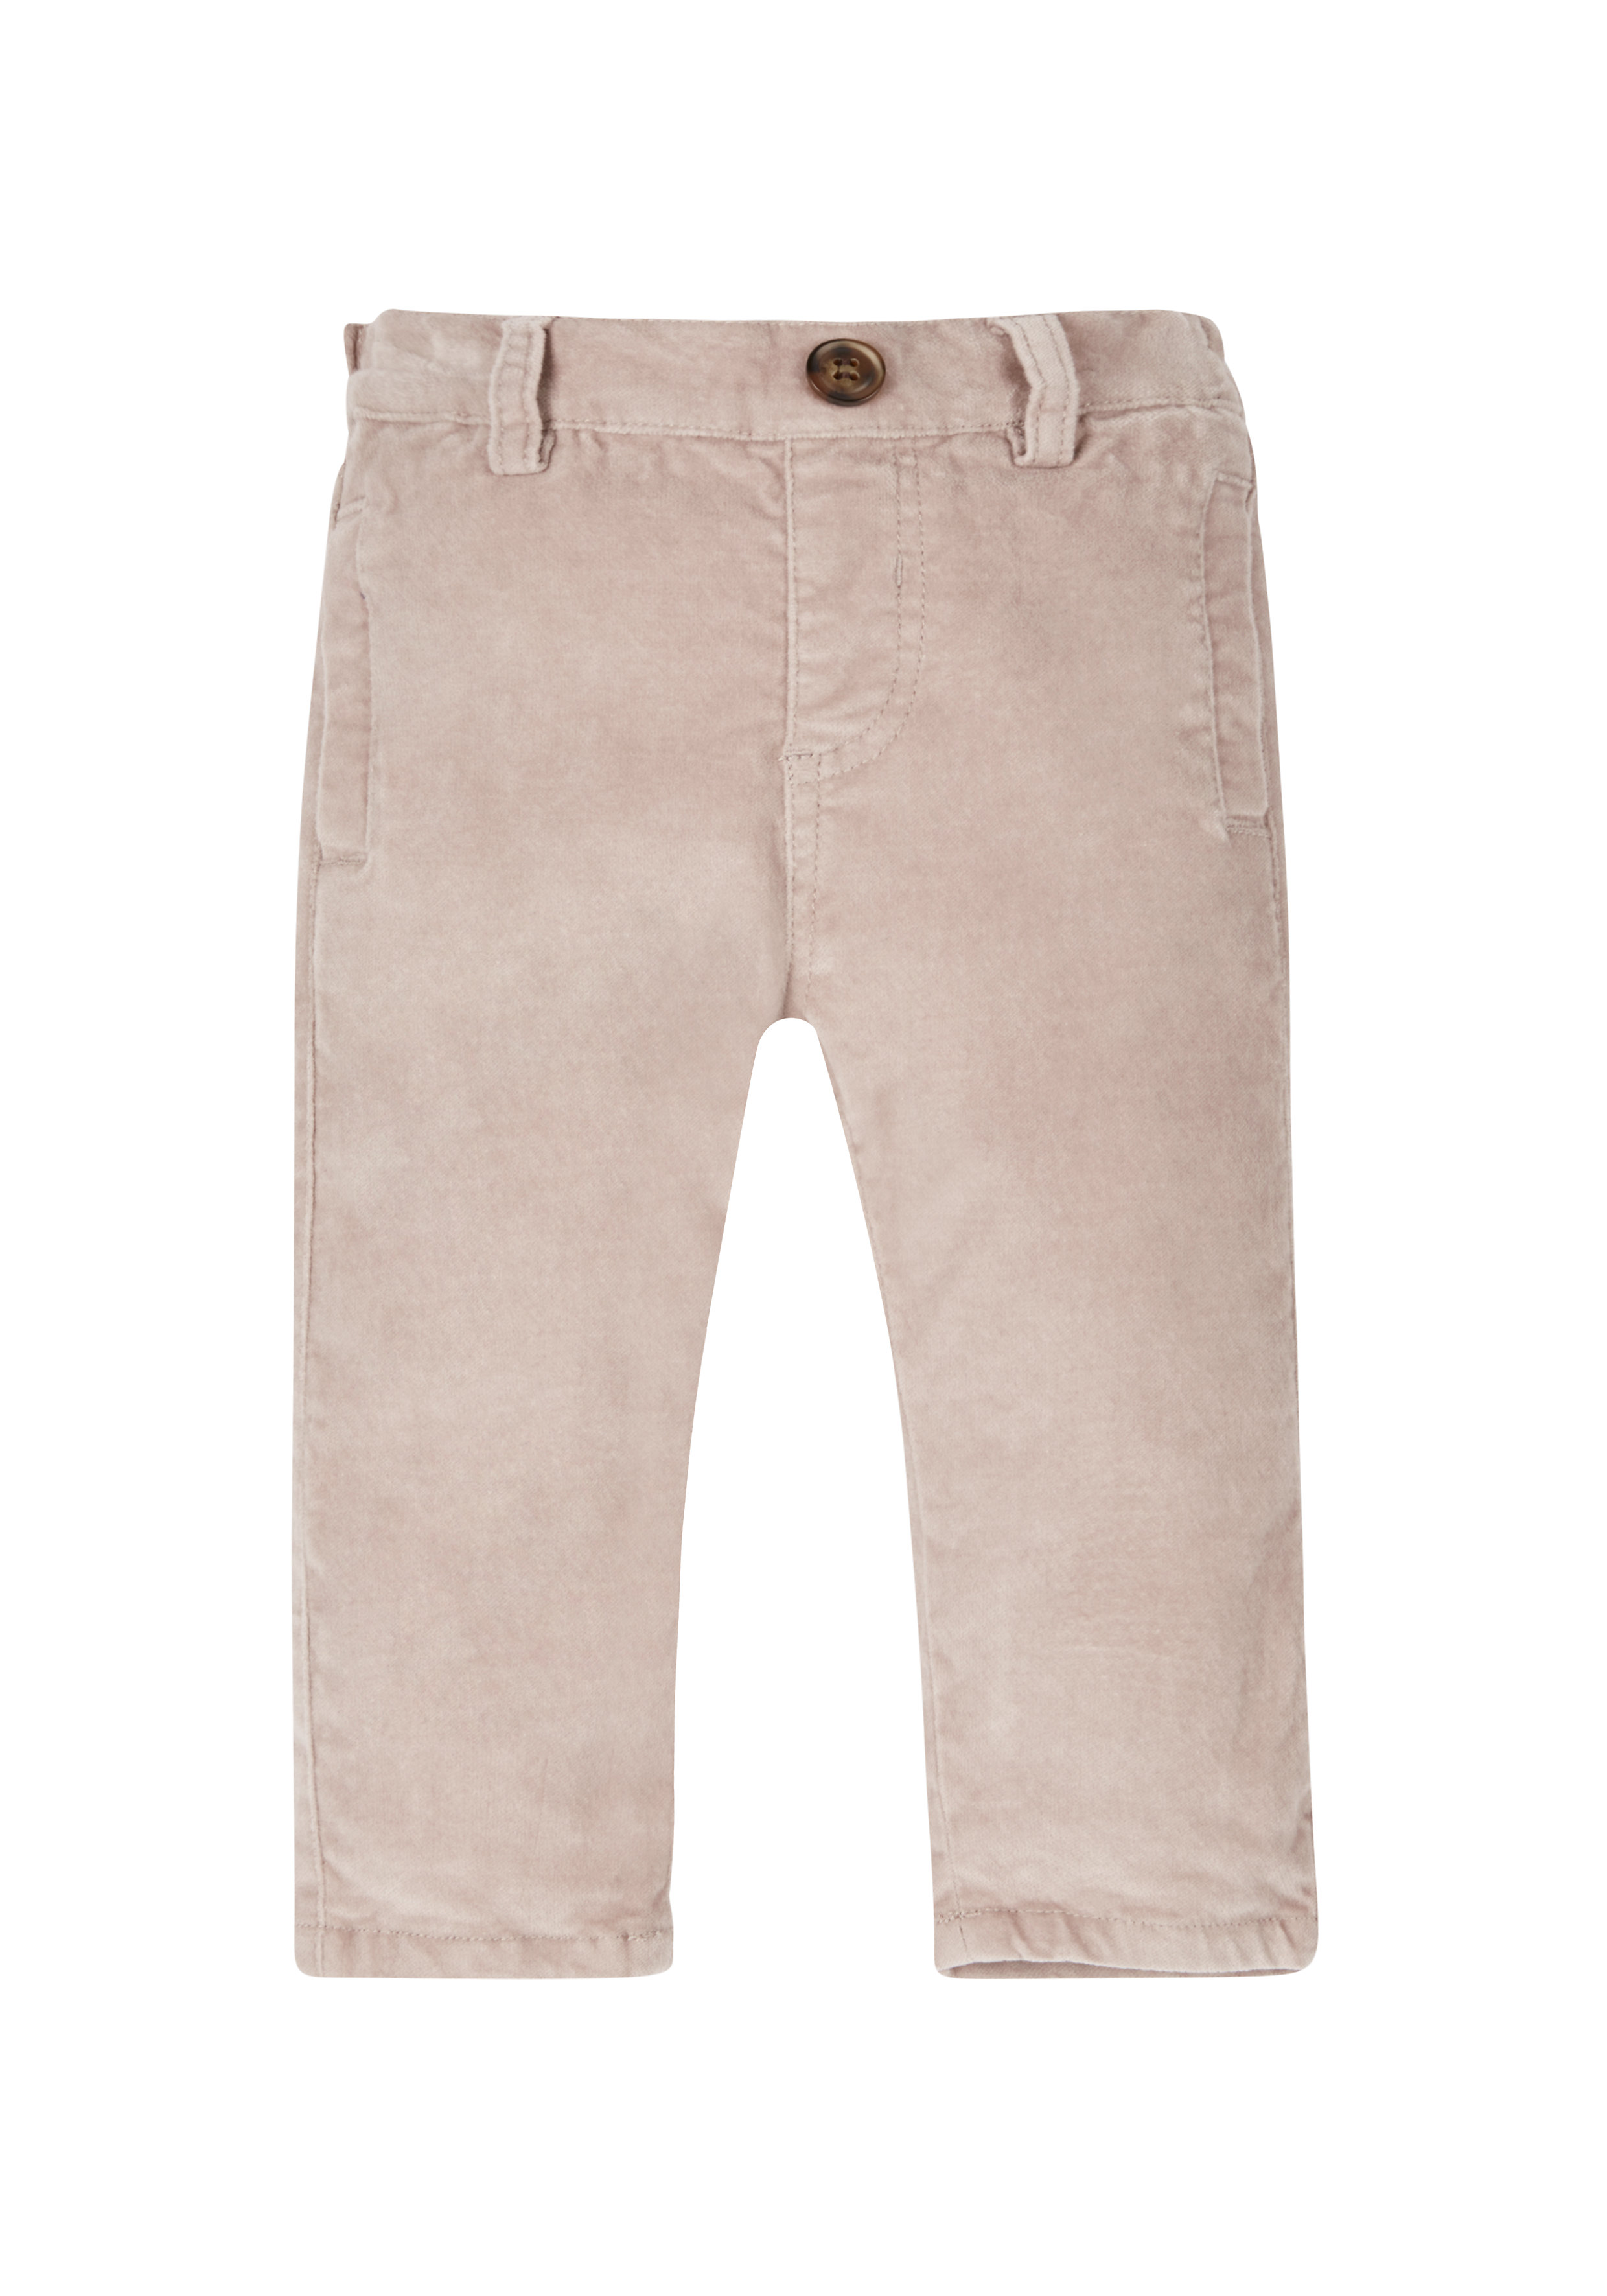 Mothercare | Girls Cord Trousers  - Pink